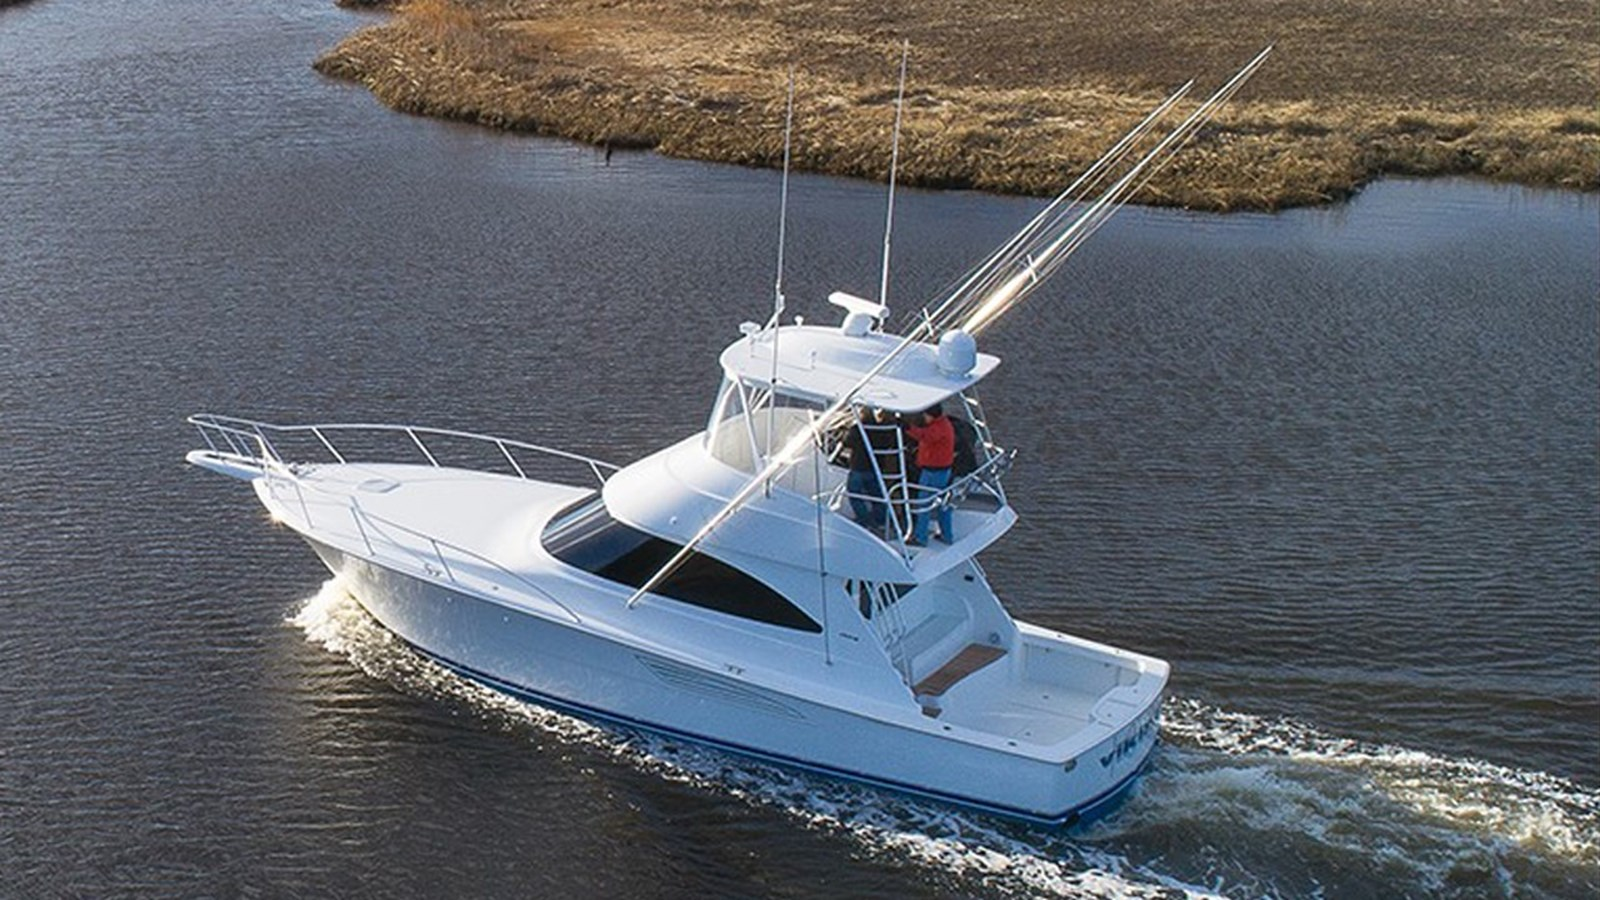 2018 VIKING 44 Convertible (VK44-601) For Sale